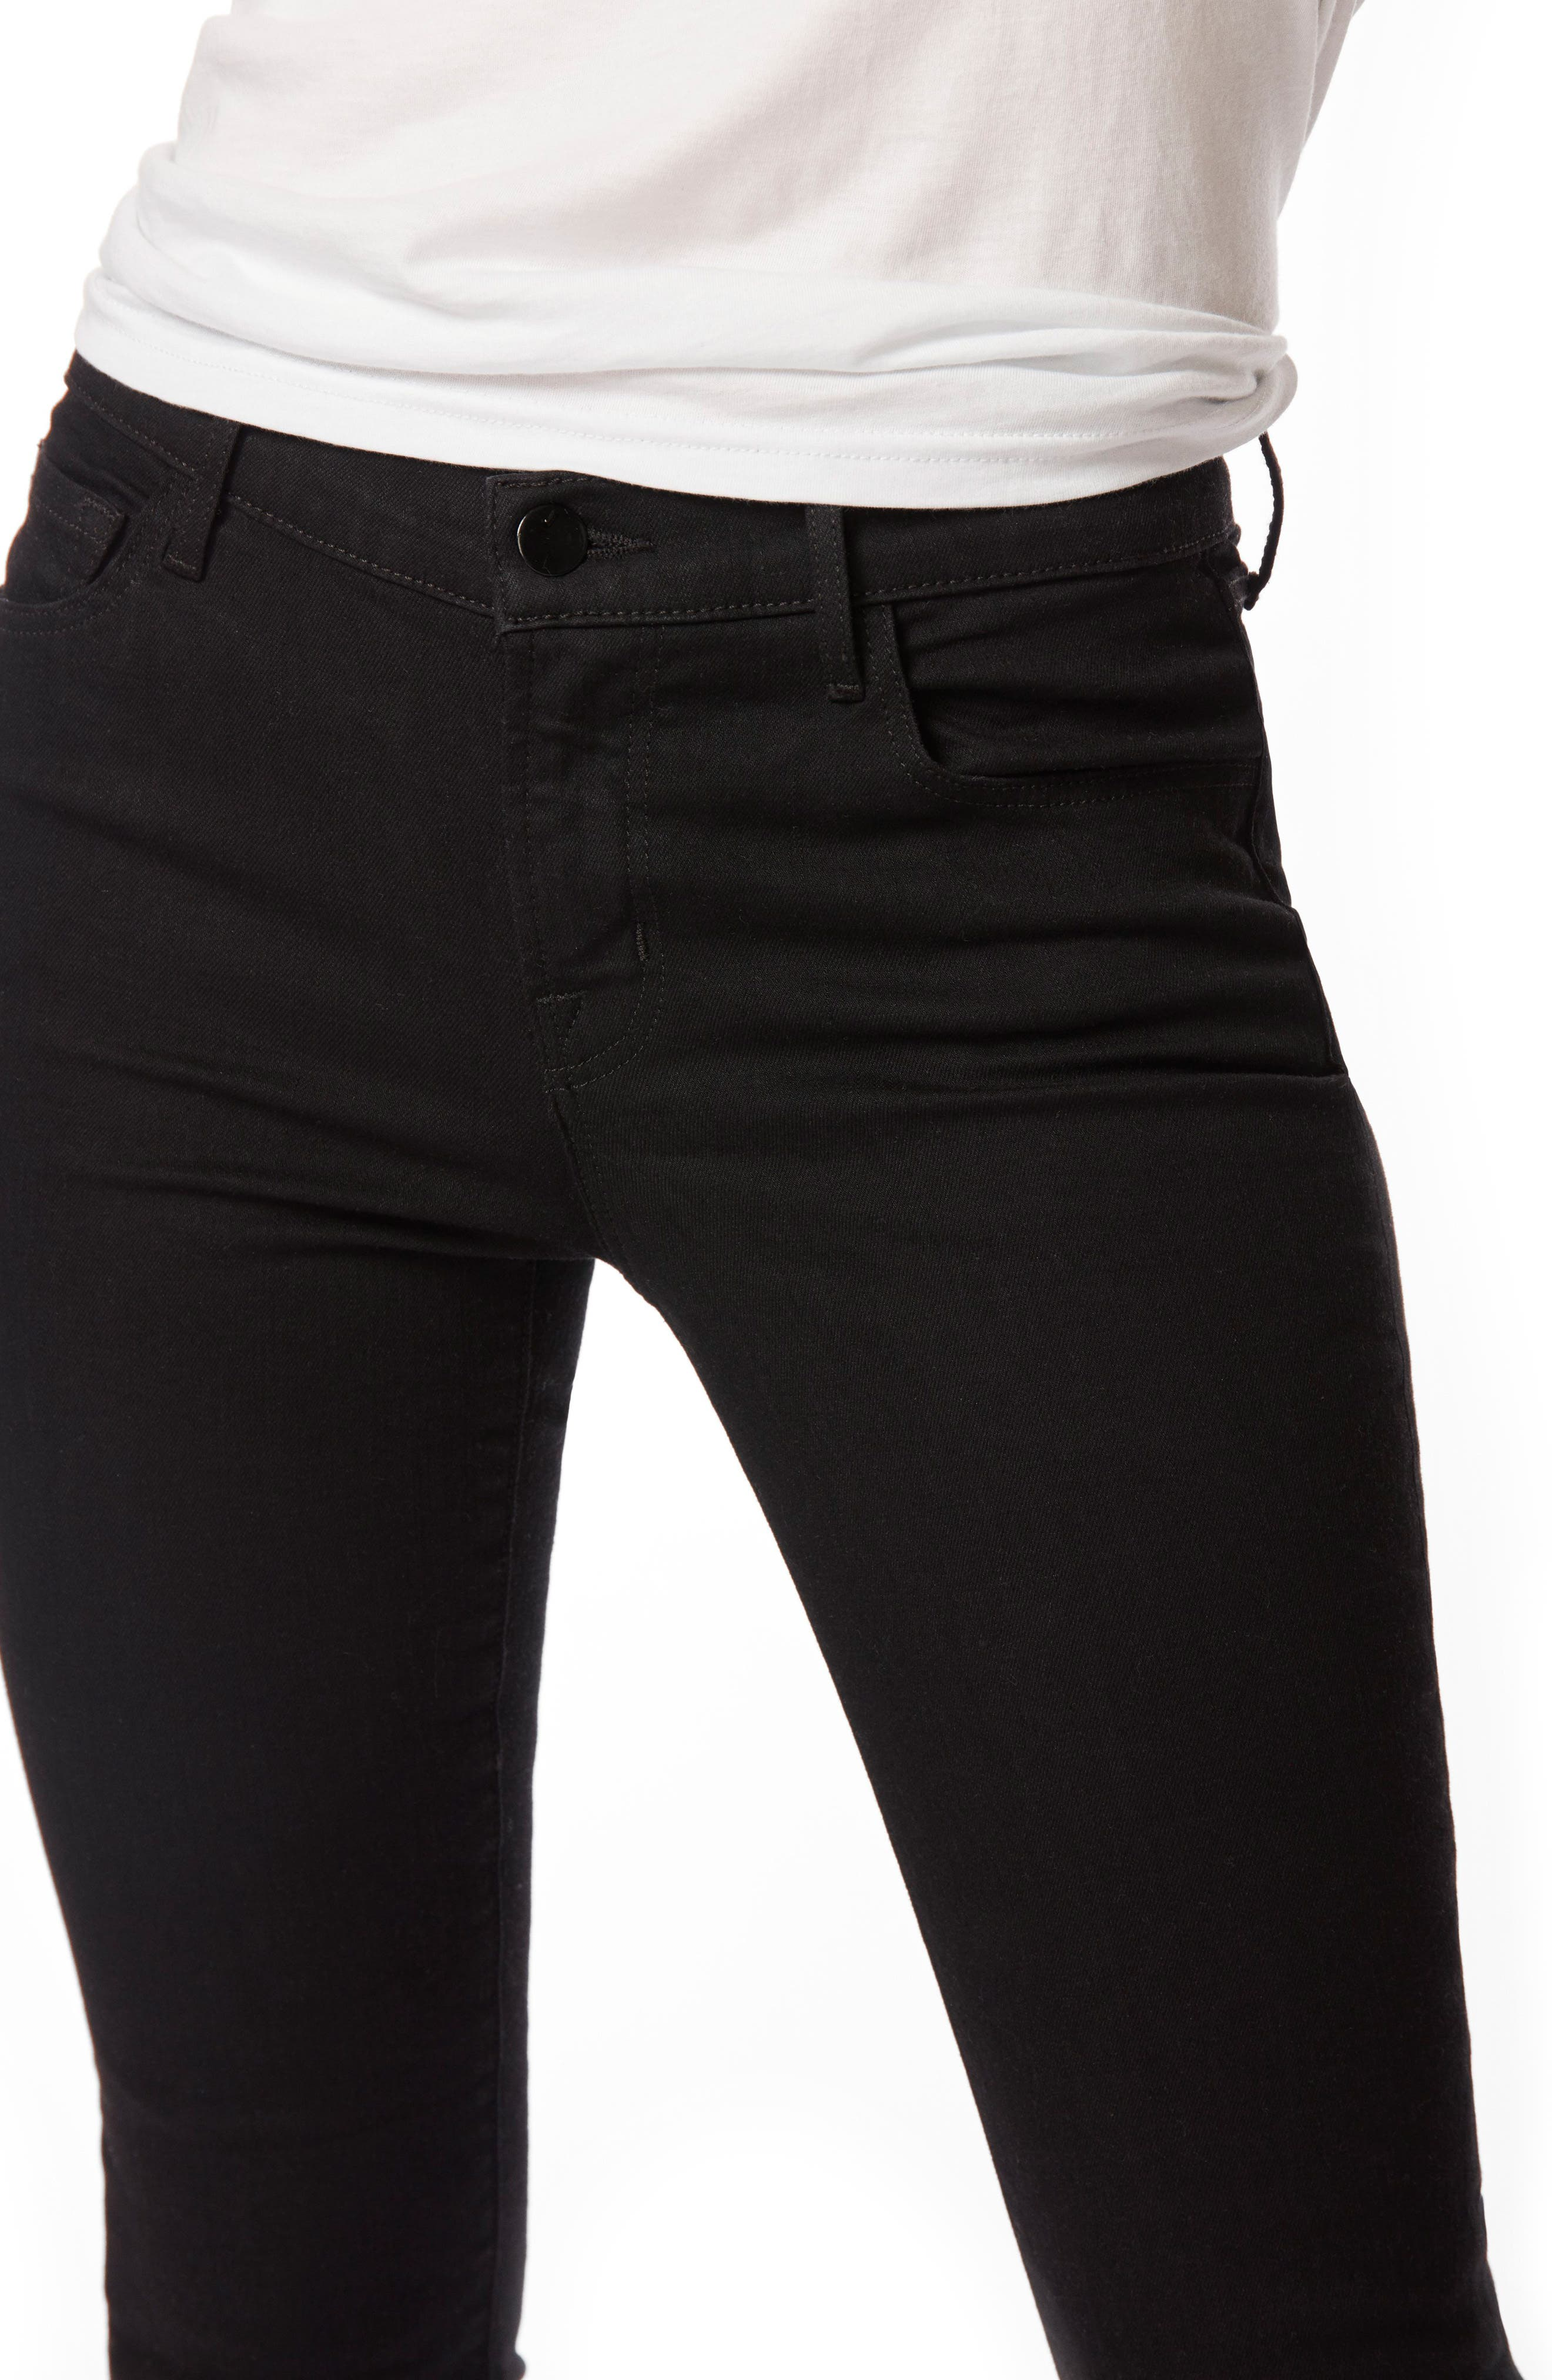 Alternate Image 4  - J Brand '811' Mid Rise Skinny Jeans (Photo Ready Vanity)